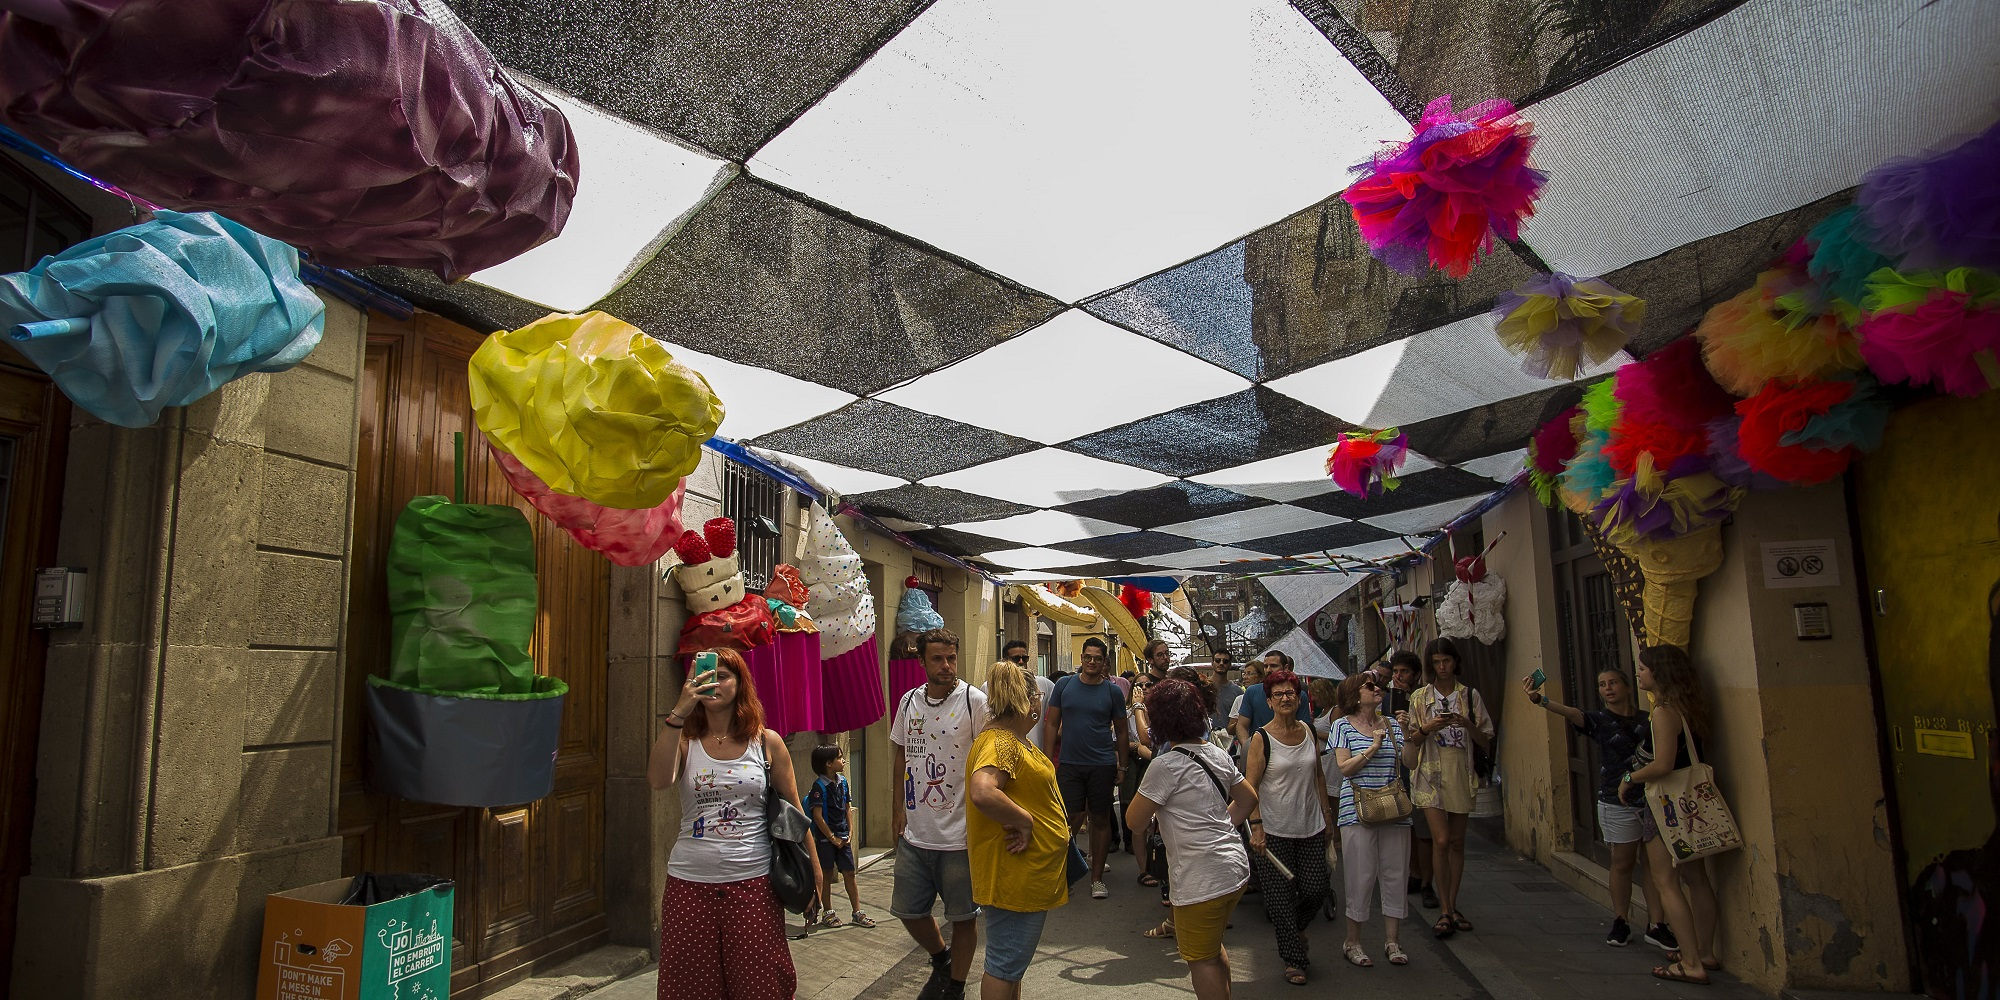 Gracia Festival: people enjoying the decorated streets